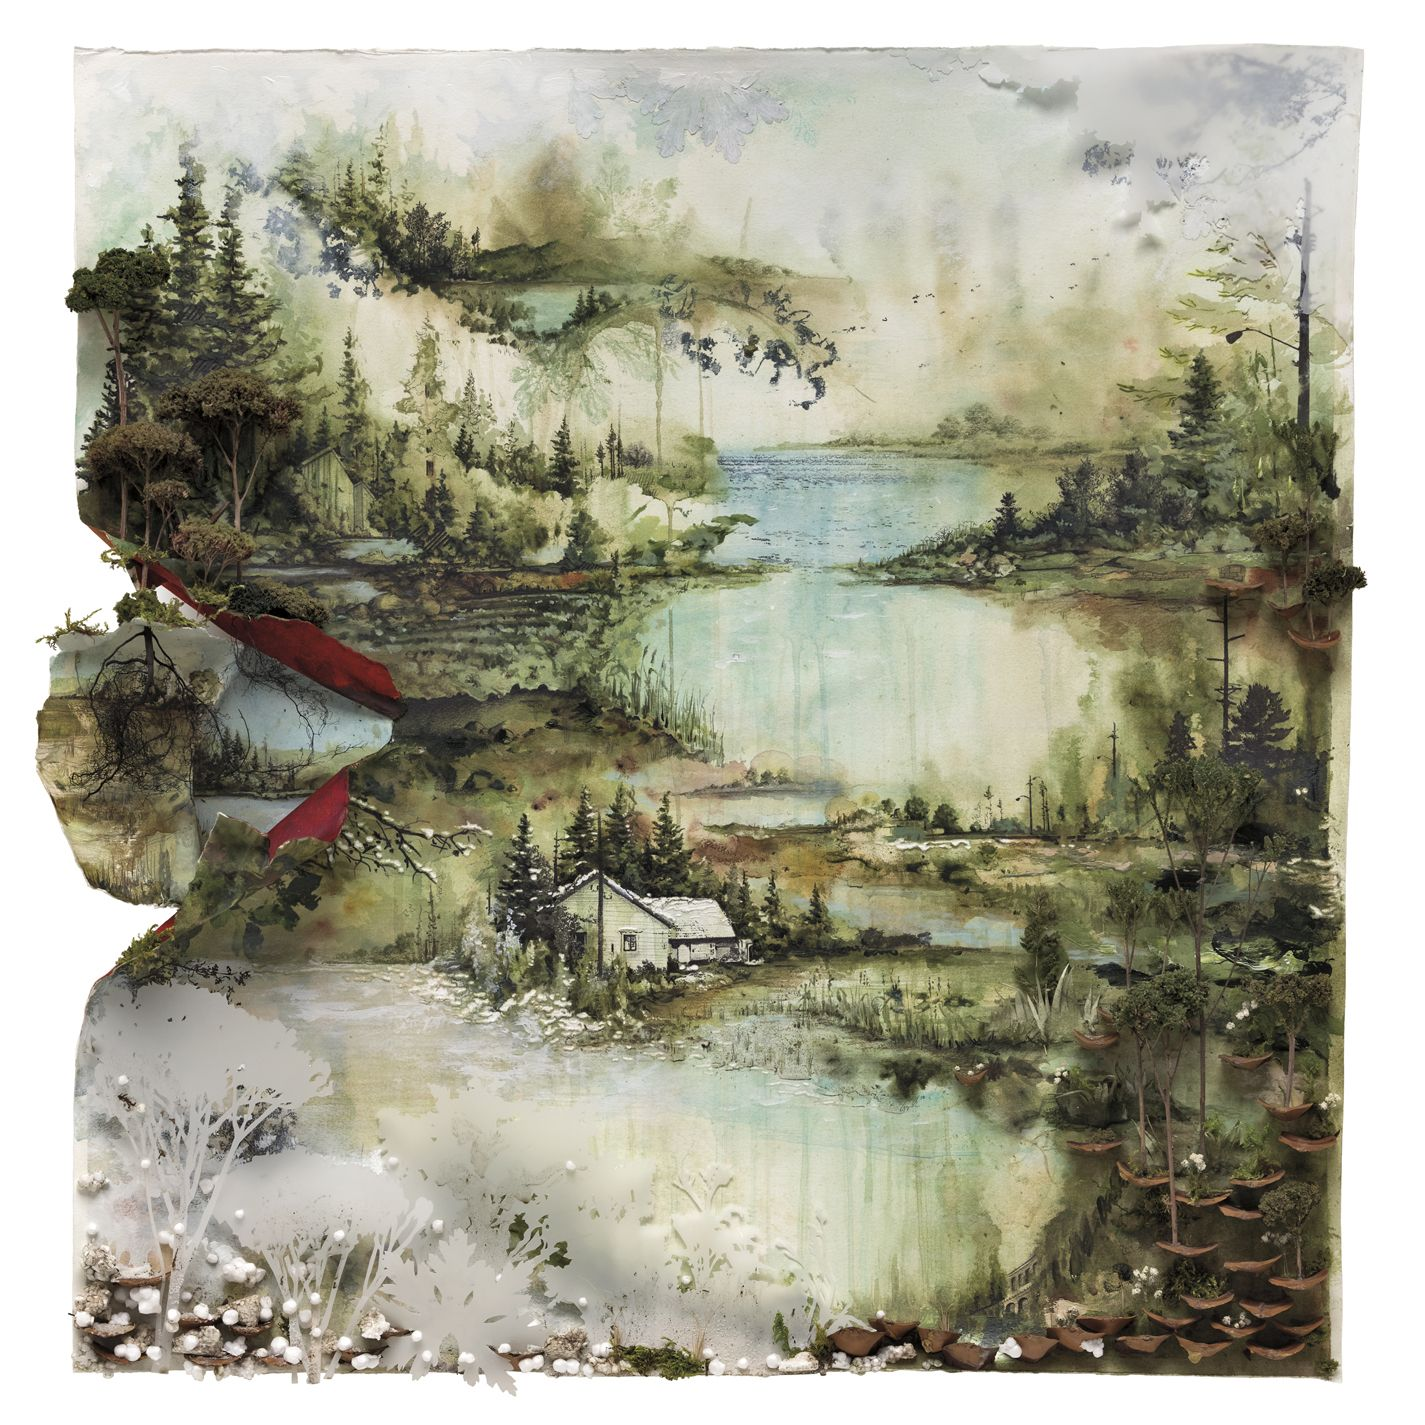 Cover Of Self Titled Album With Images Bon Iver Album Art